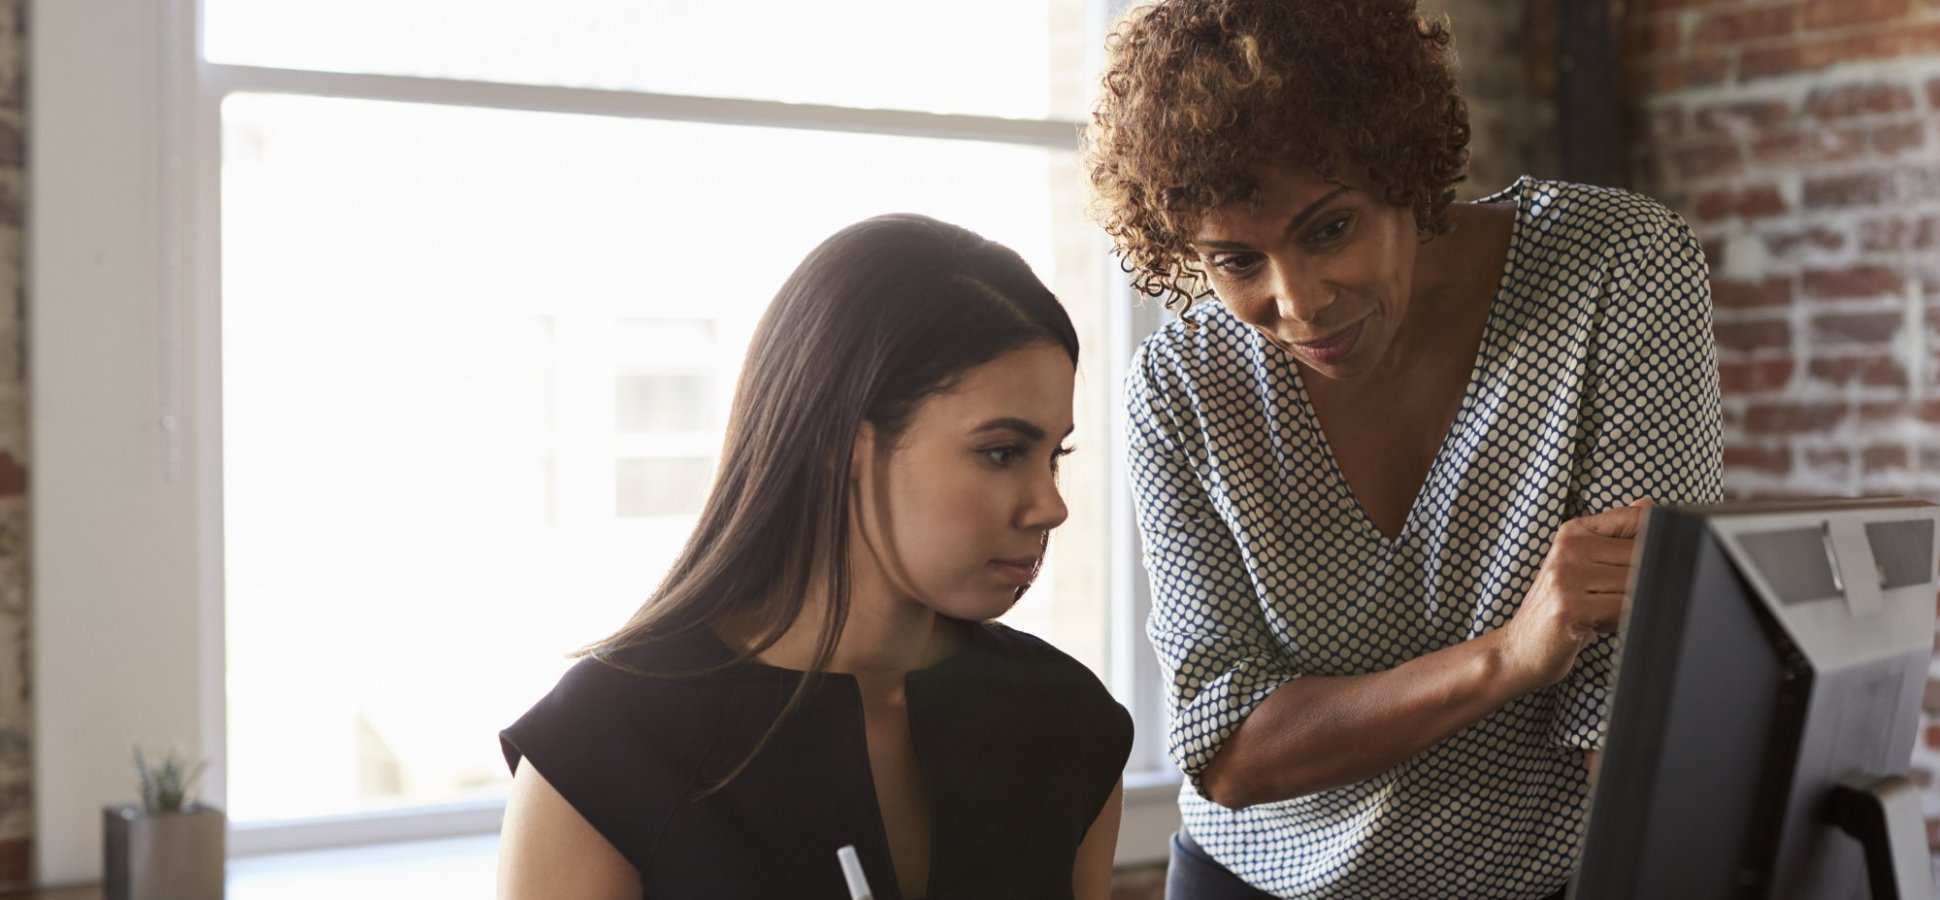 Need a Business Mentor? Here's How to Ask a Pro for Guidance